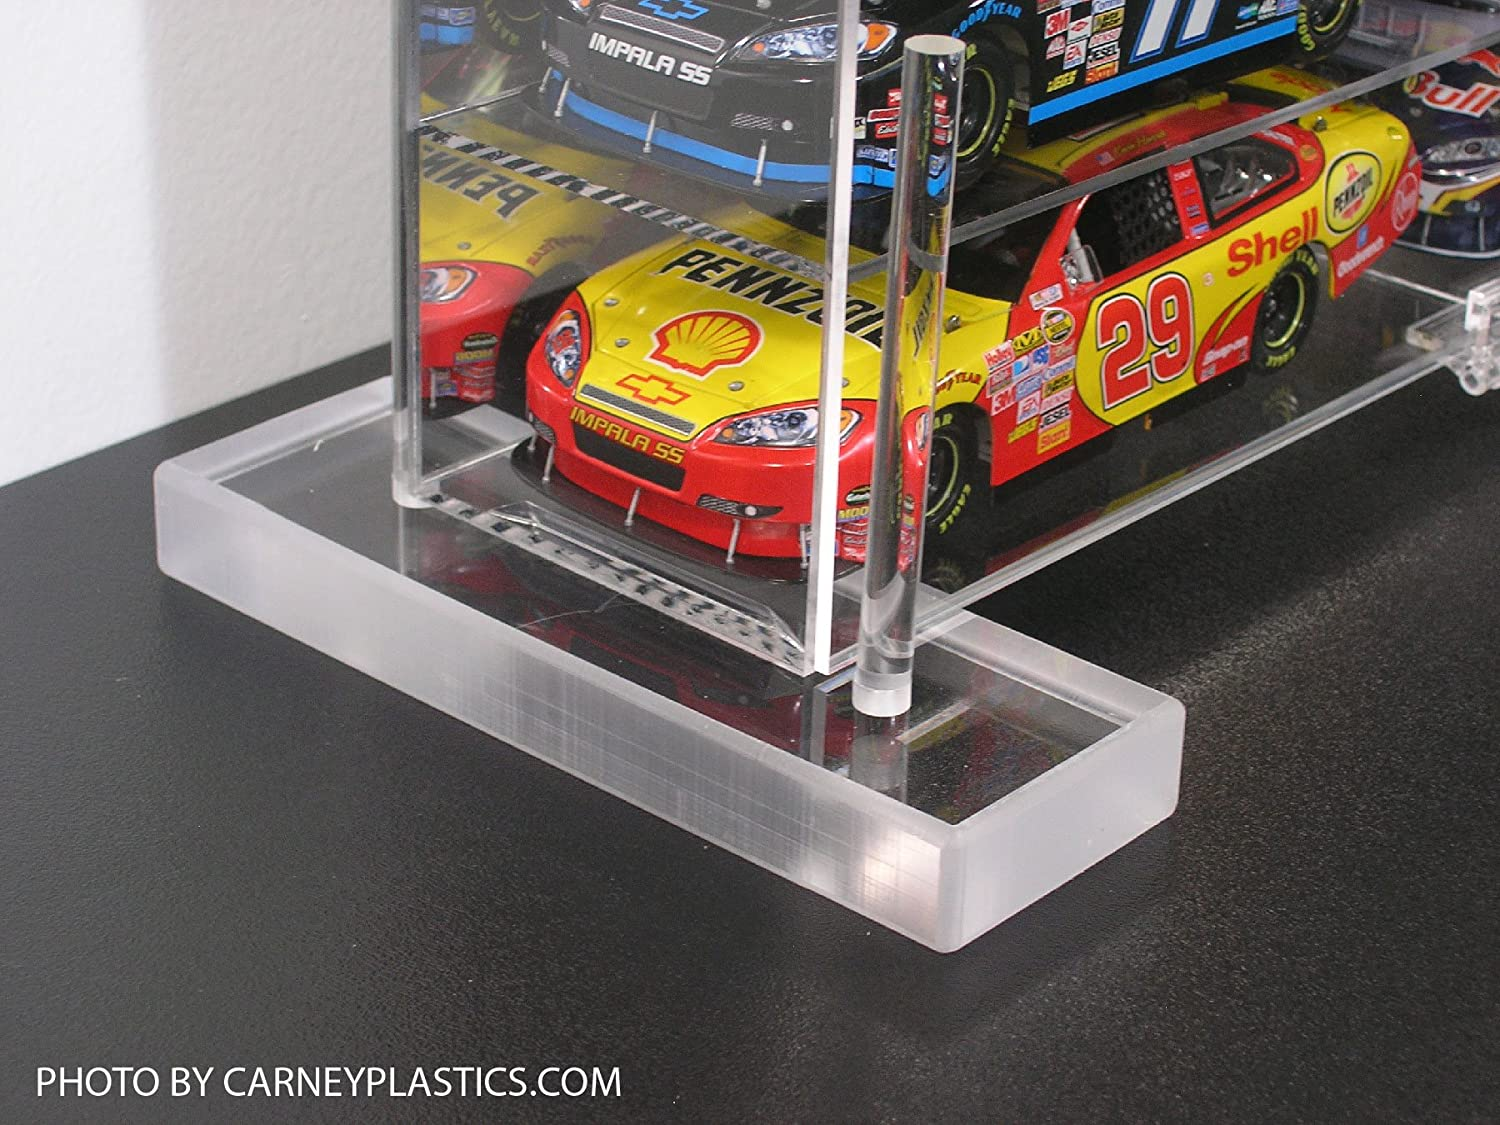 Table top display case - Amazon Com Diecast Car Display Case Stand 1 43 Scale Sports Related Display Cases Sports Outdoors